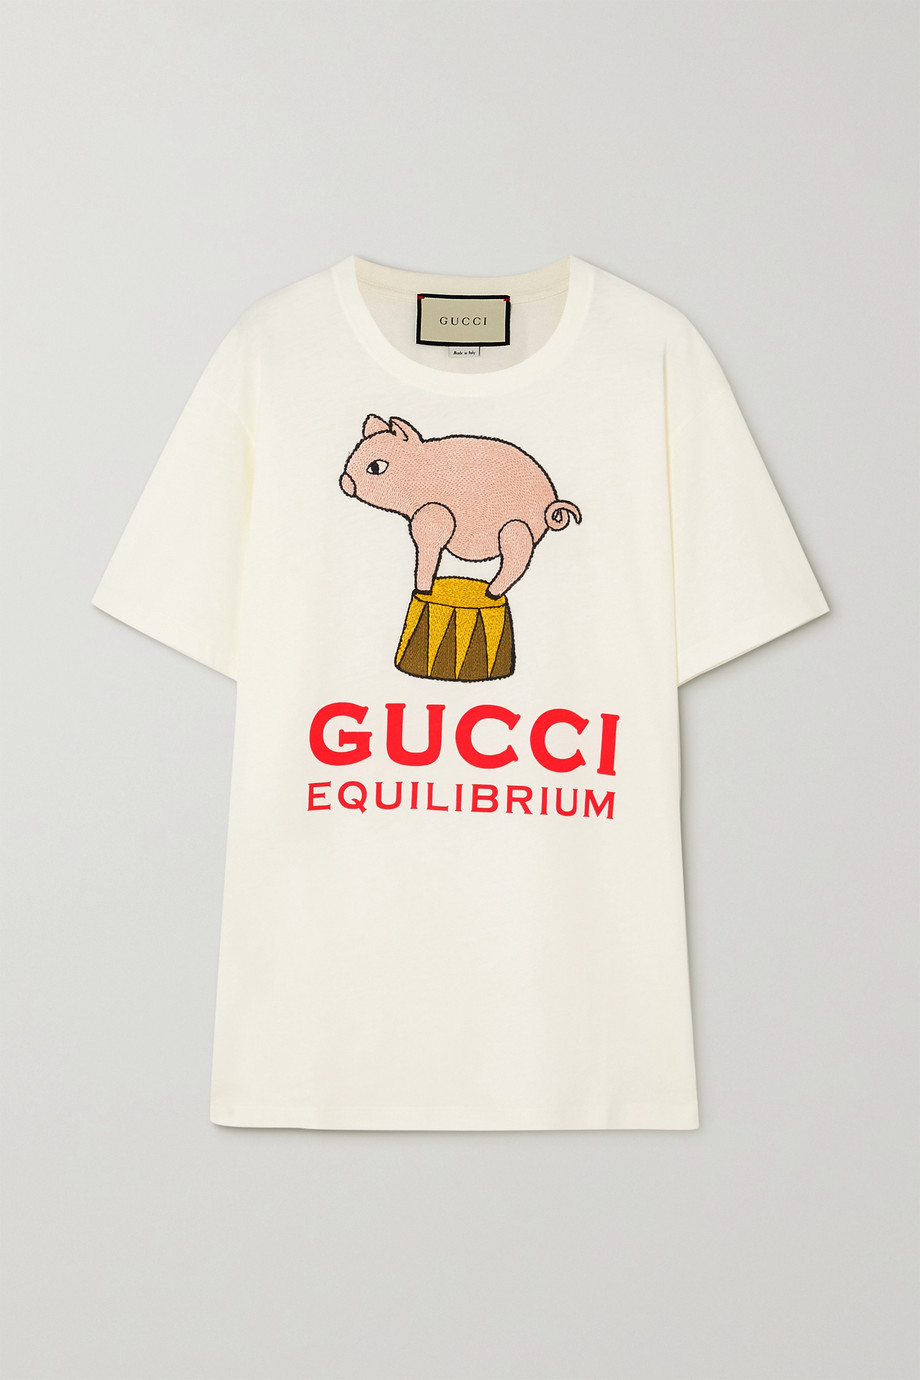 GUCCI + NET SUSTAIN oversized appliquéd printed organic cotton-jersey T-shirt